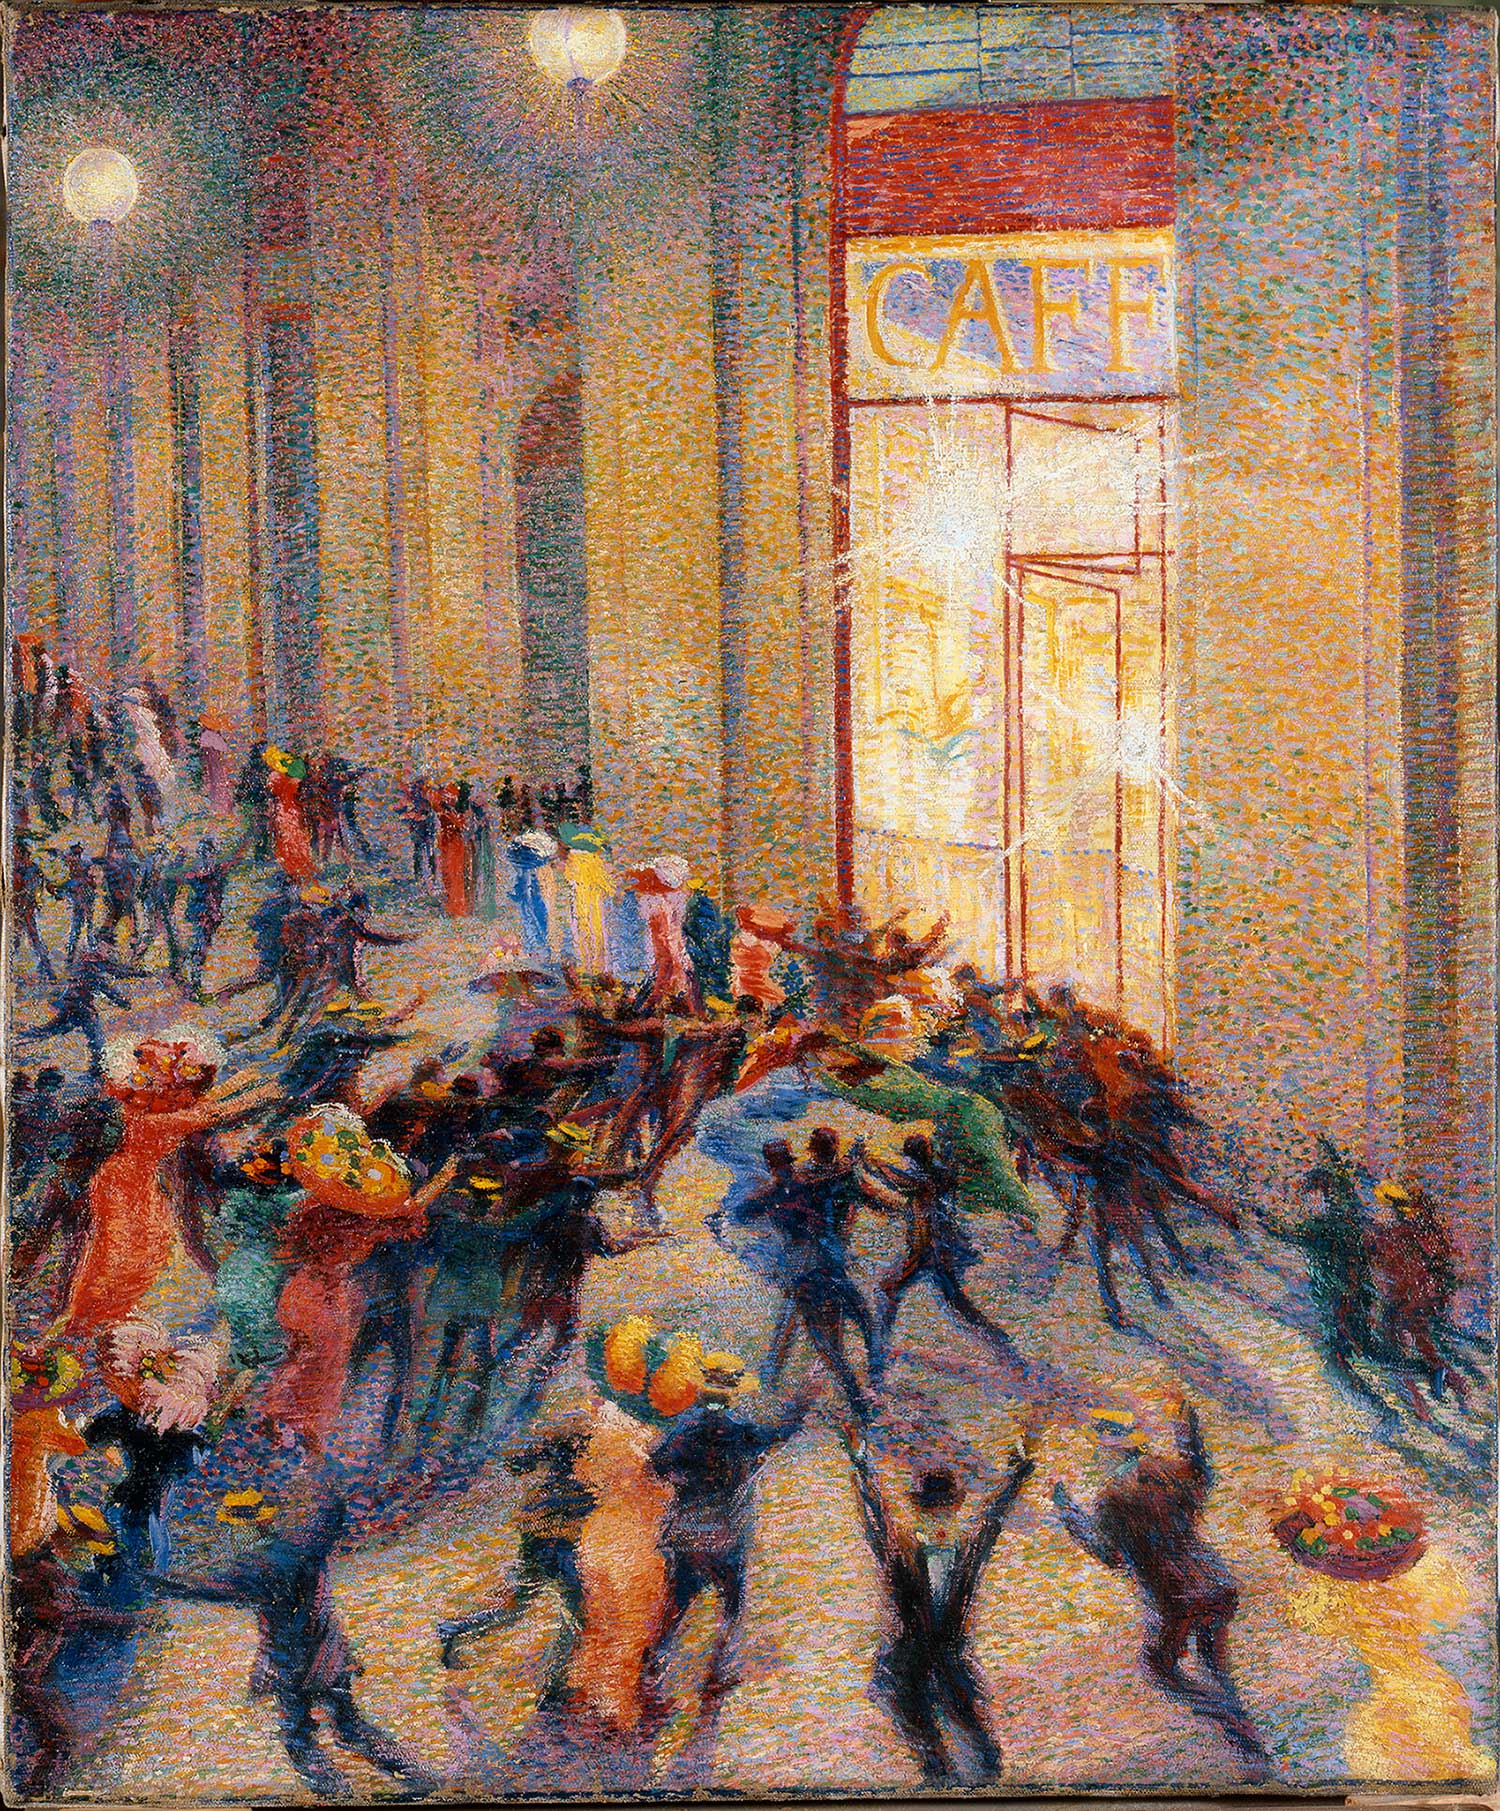 Umberto Boccioni, Riot in the Galleria, 1910, oil on canvas, 76 x 64 cm (Pinocoteca de Brera, Milan)